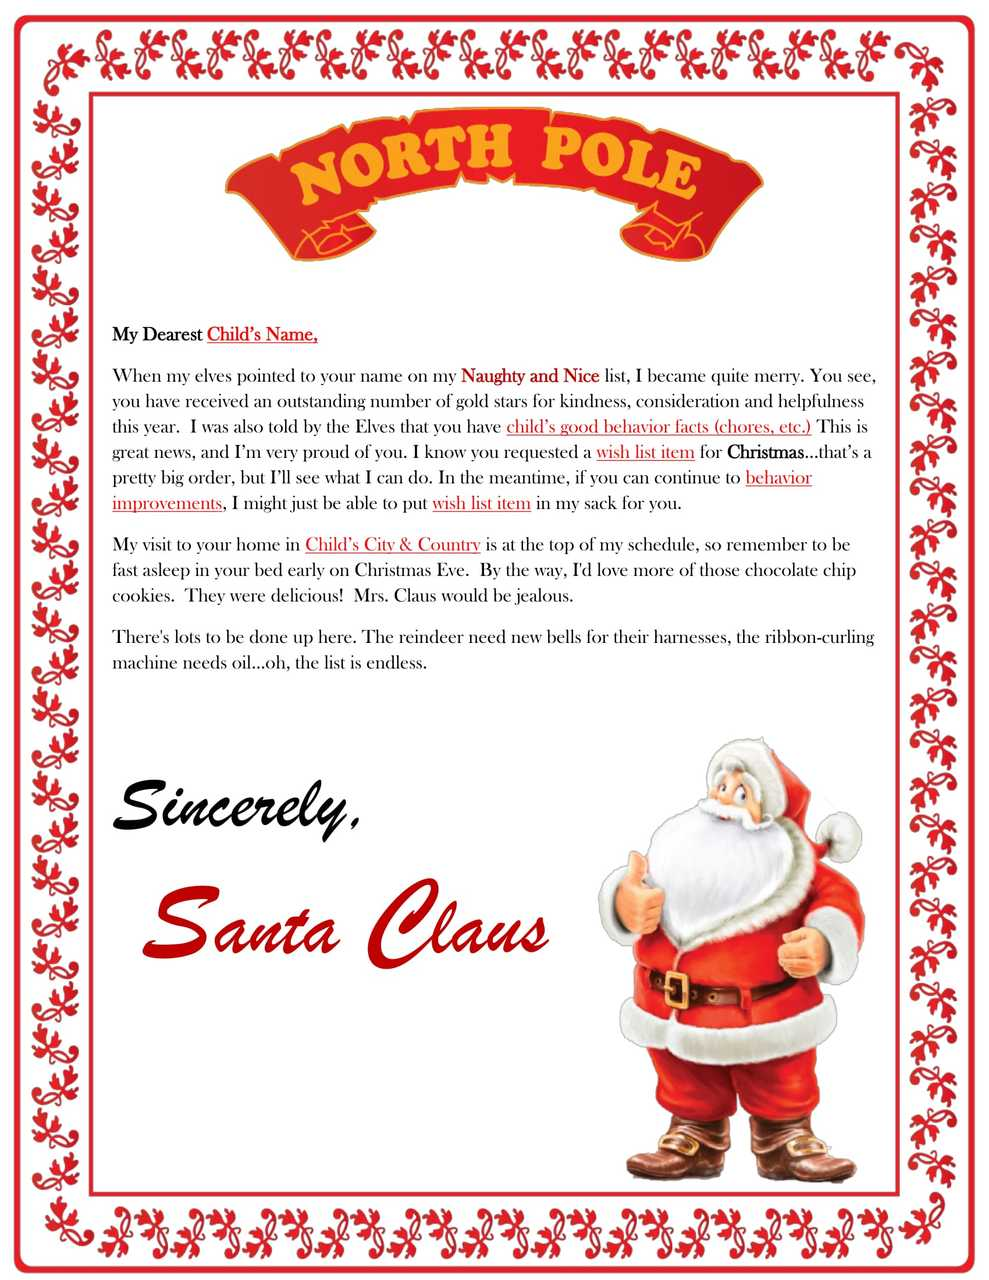 Letter From Santa Claus - Gift Baskets/Gift Basket ...